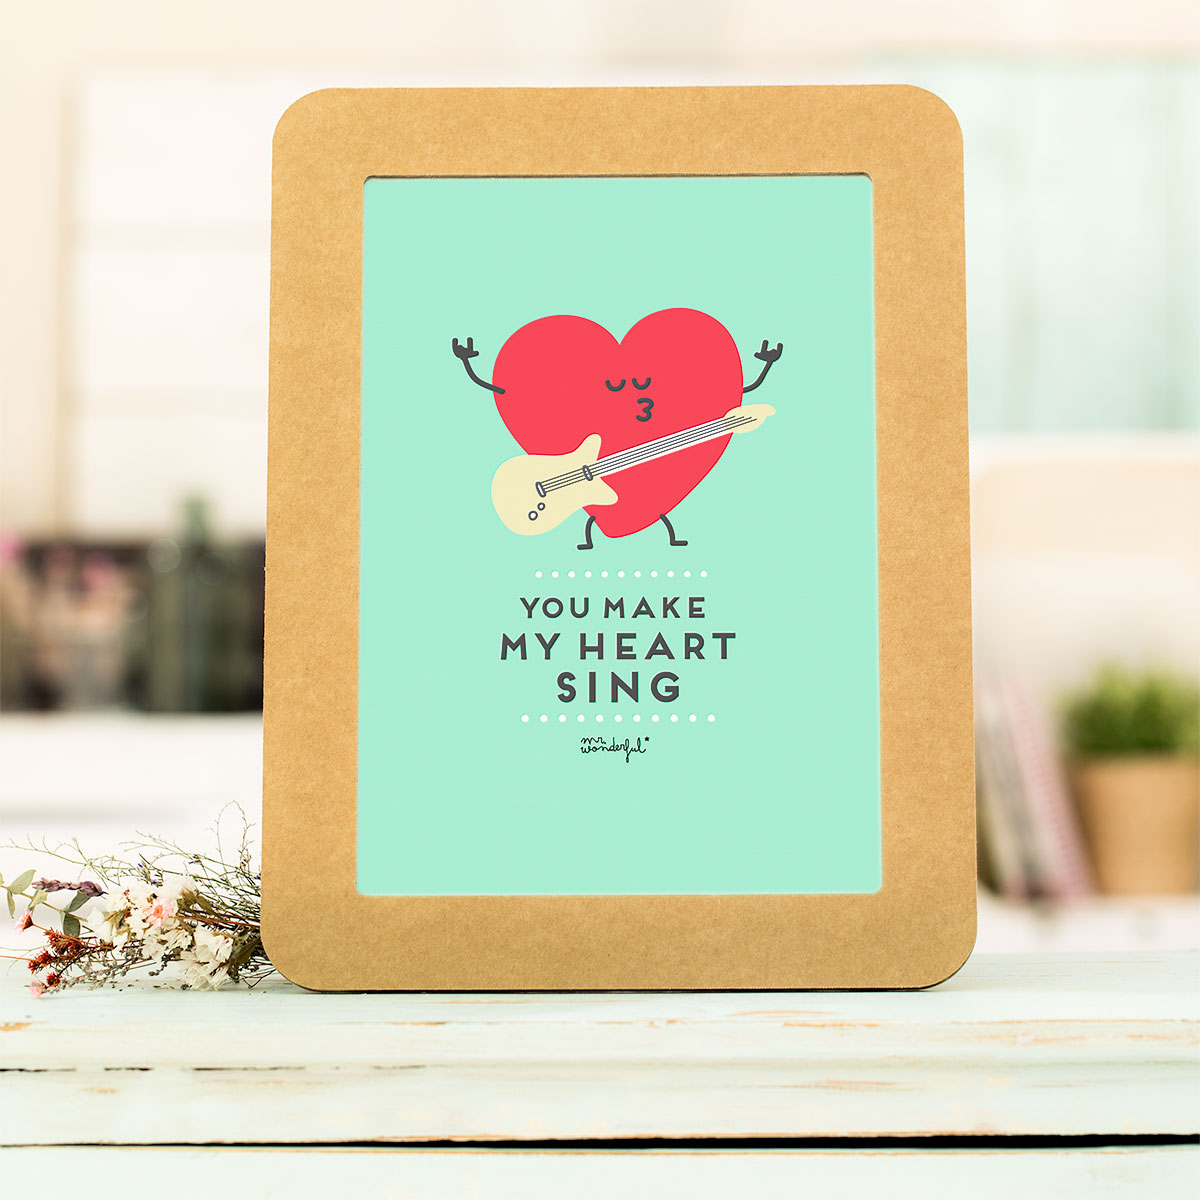 mrwonderful_LAM-RELIEVE-19-MARCO_my-heart-sing